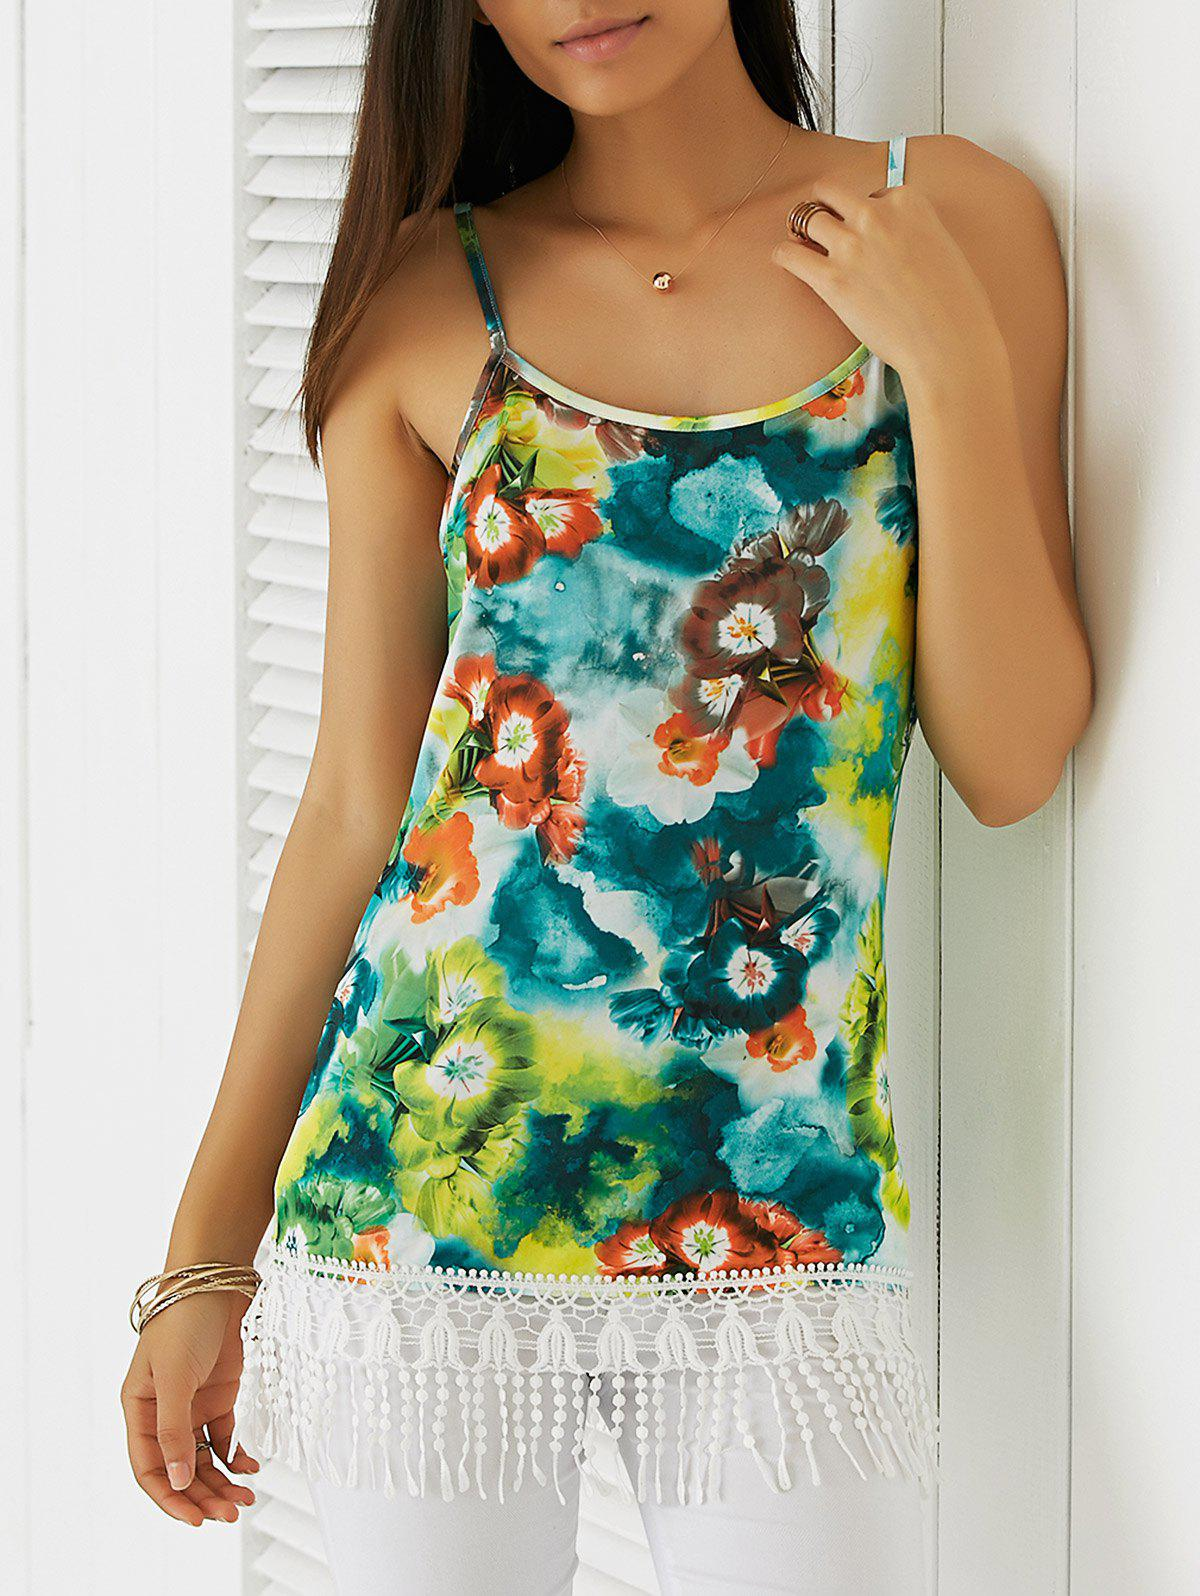 Fringed Floral Print  Spaghetti Strap Tank Top - L COLORMIX